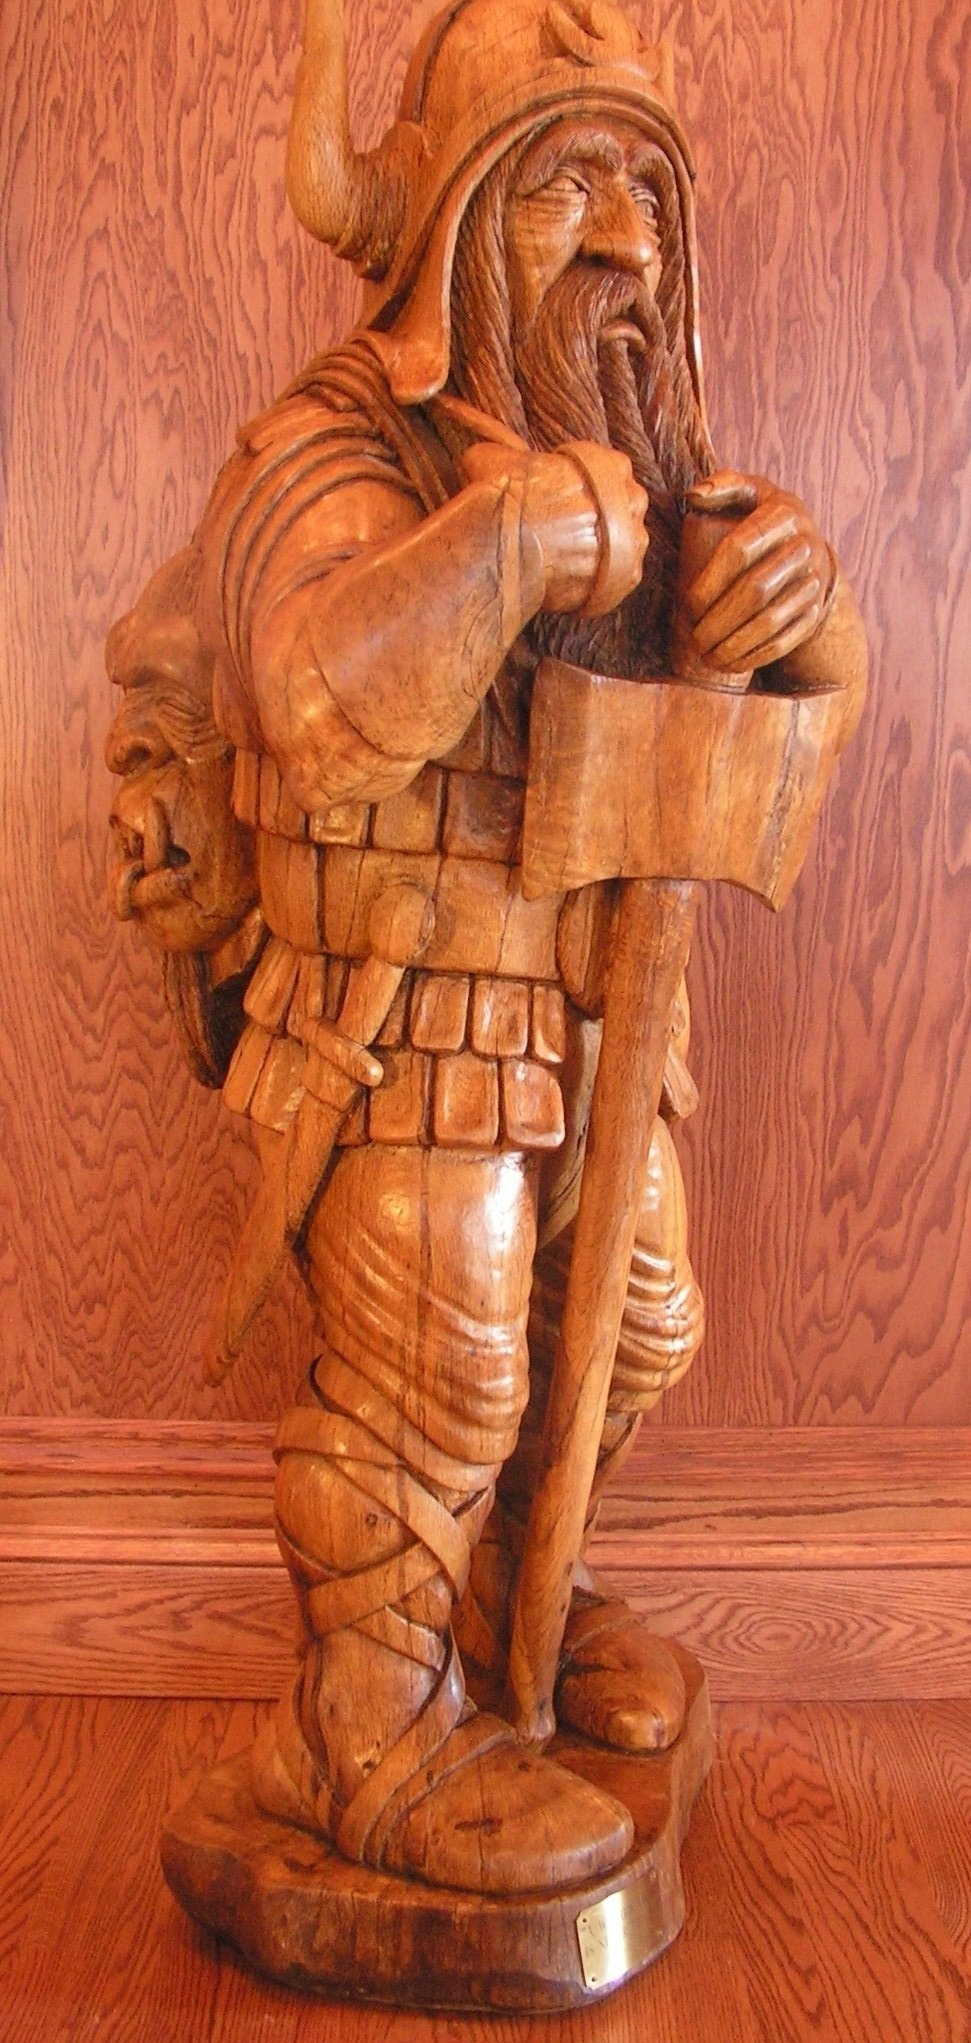 Ronald Smith: 'A Warrior Dwarf is Never Too Old', 1997 Sculpture, Figurative. Artist Description:  A Warrior Dwarf is Never Too Old , Sculpture, wood, fantasy, Tolkien, mythology, figurative, representational...